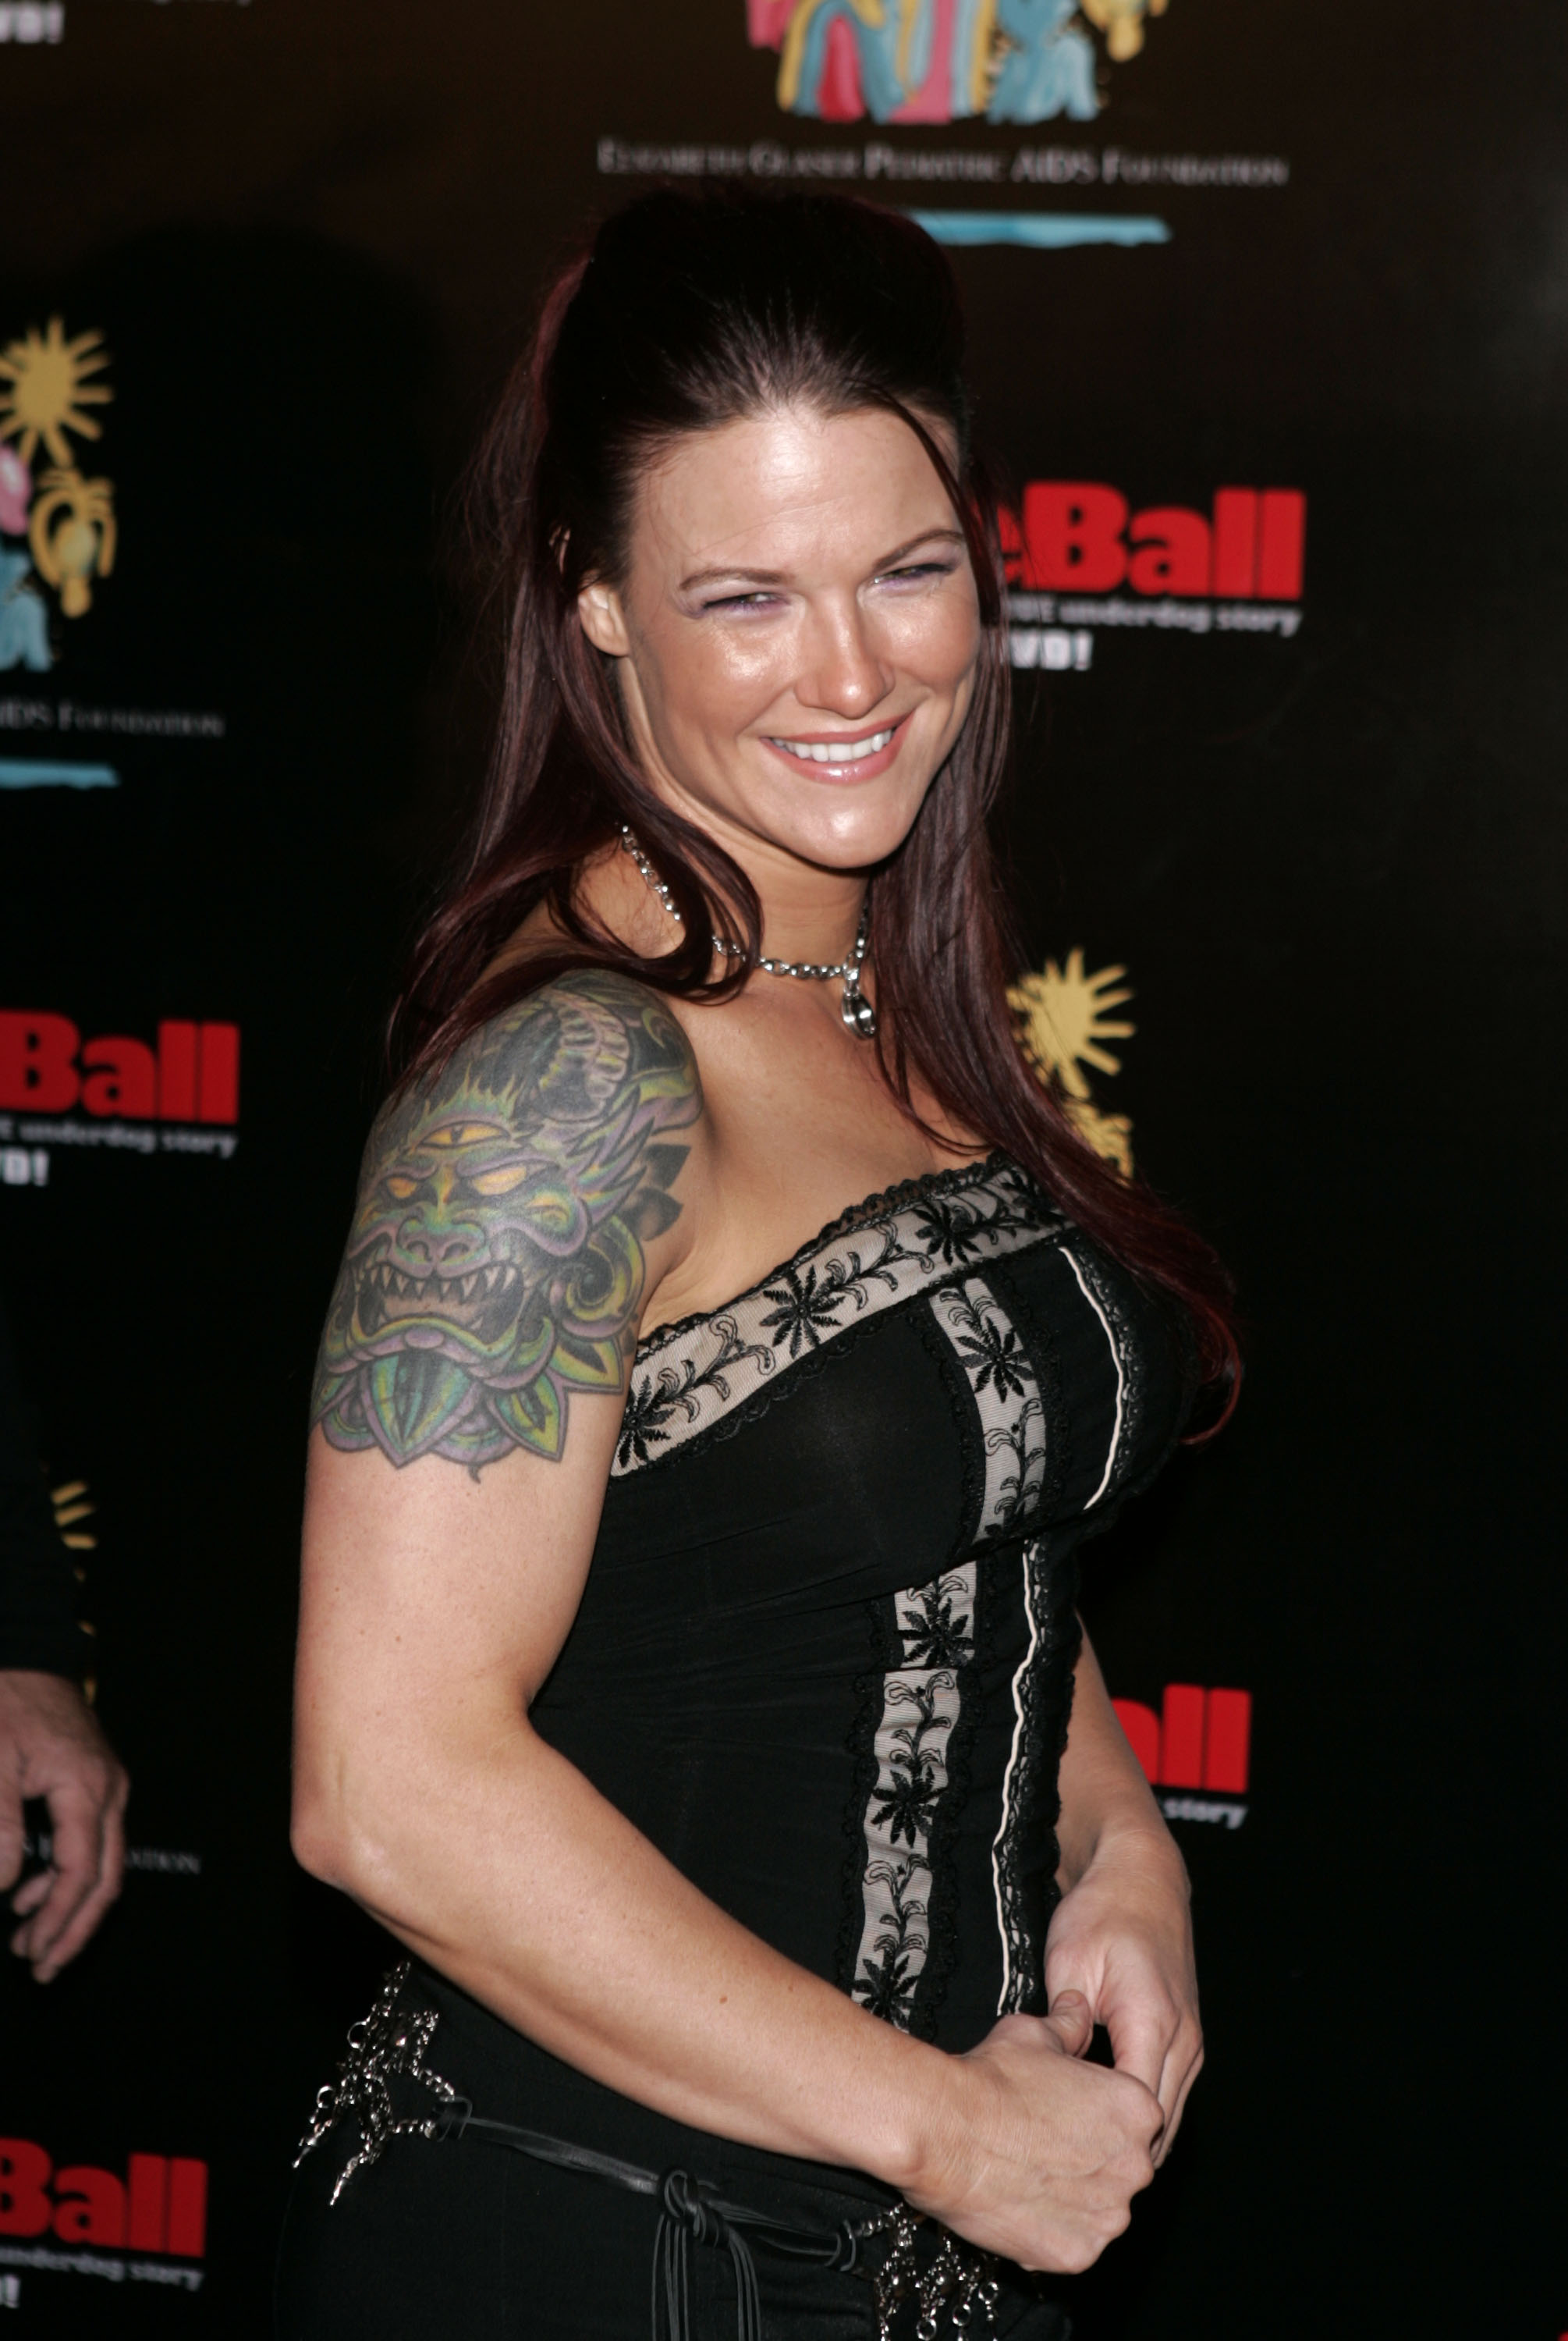 Professional wrestler Lita, born Amy Dumas, attends Dodgeball: The Celebrity Tournament to benefit the Elizabeth Glaser Pediatric Aids Foundation and celebrate the DVD Release of 'Dodgeball: A True Underdog Story' at the Hollywood Palladium December 7, 2004 in Hollywood, California. (Getty Images)